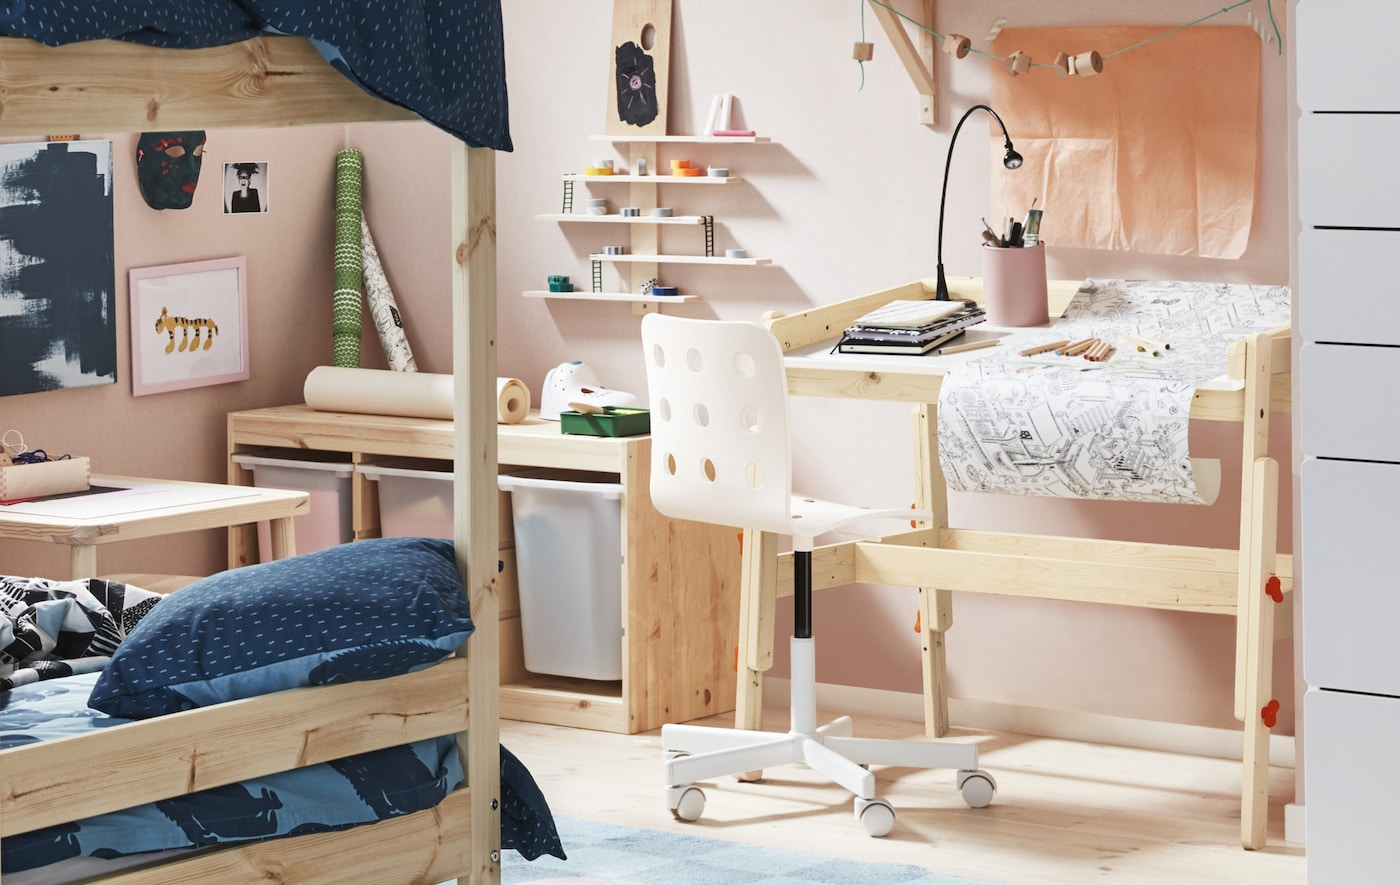 A kid's room decorated/painted in pale pink with light wooden furniture including a desk and bunk bed.